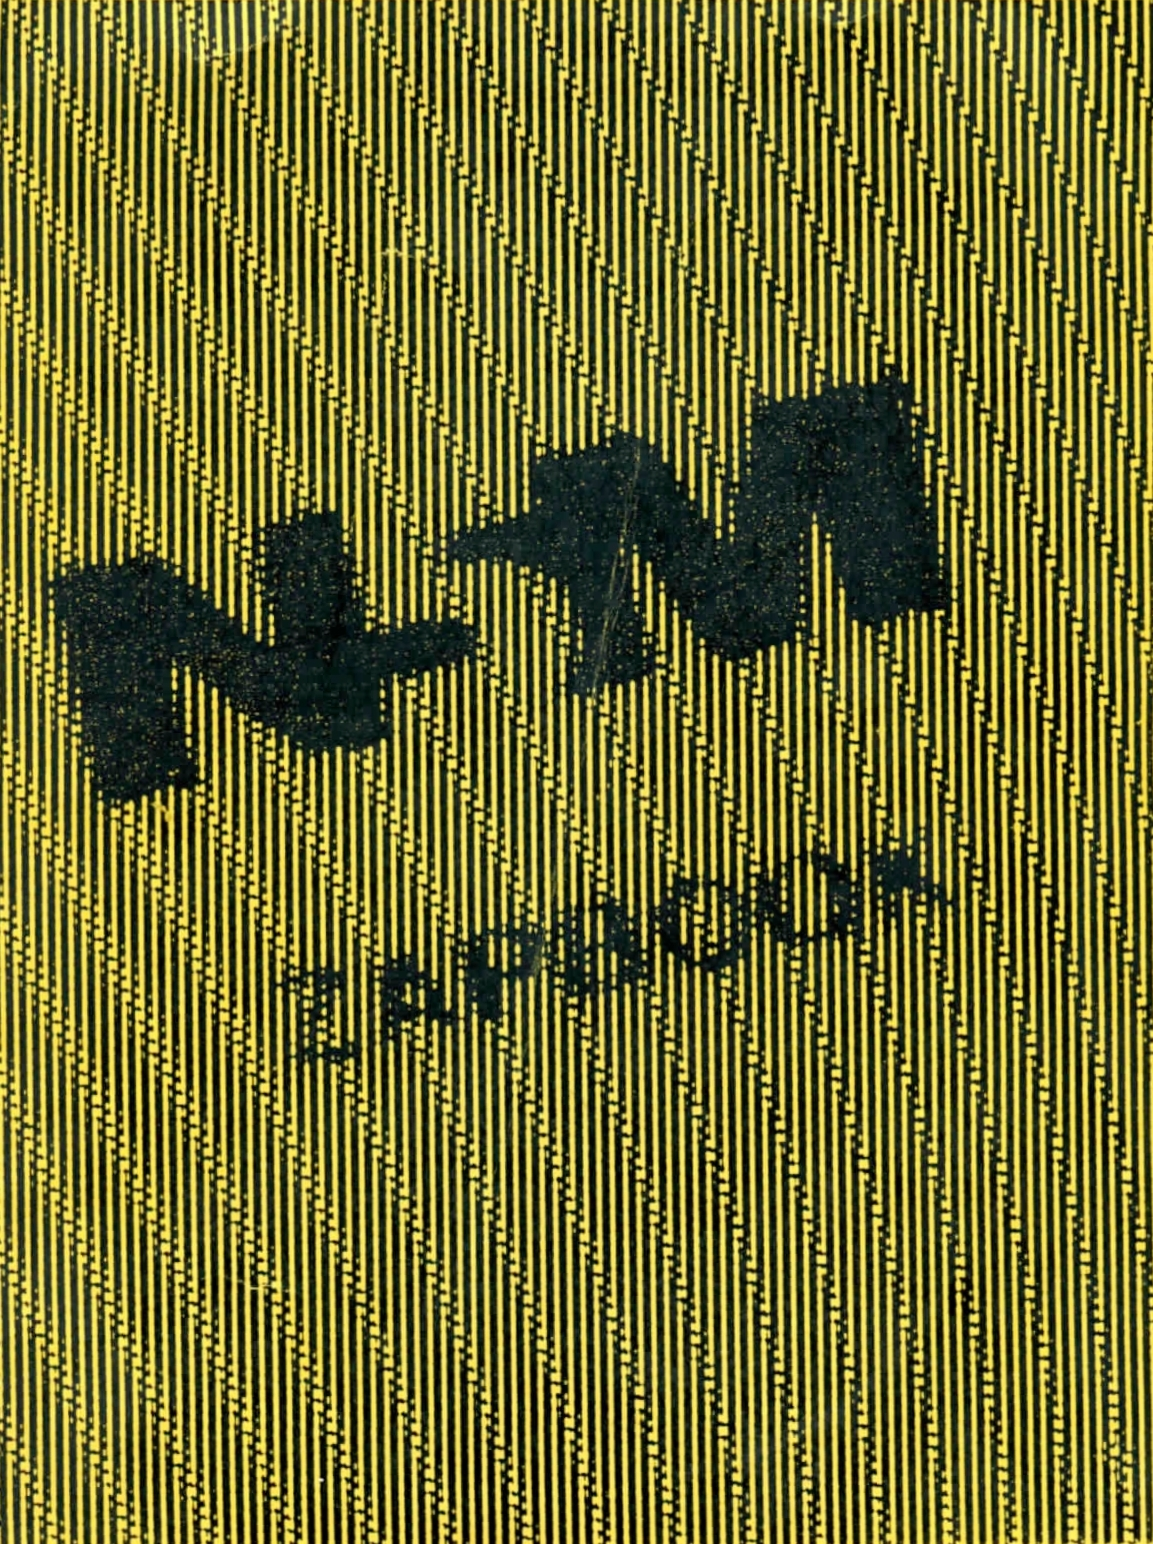 N5M1 Zapbook (Cover)